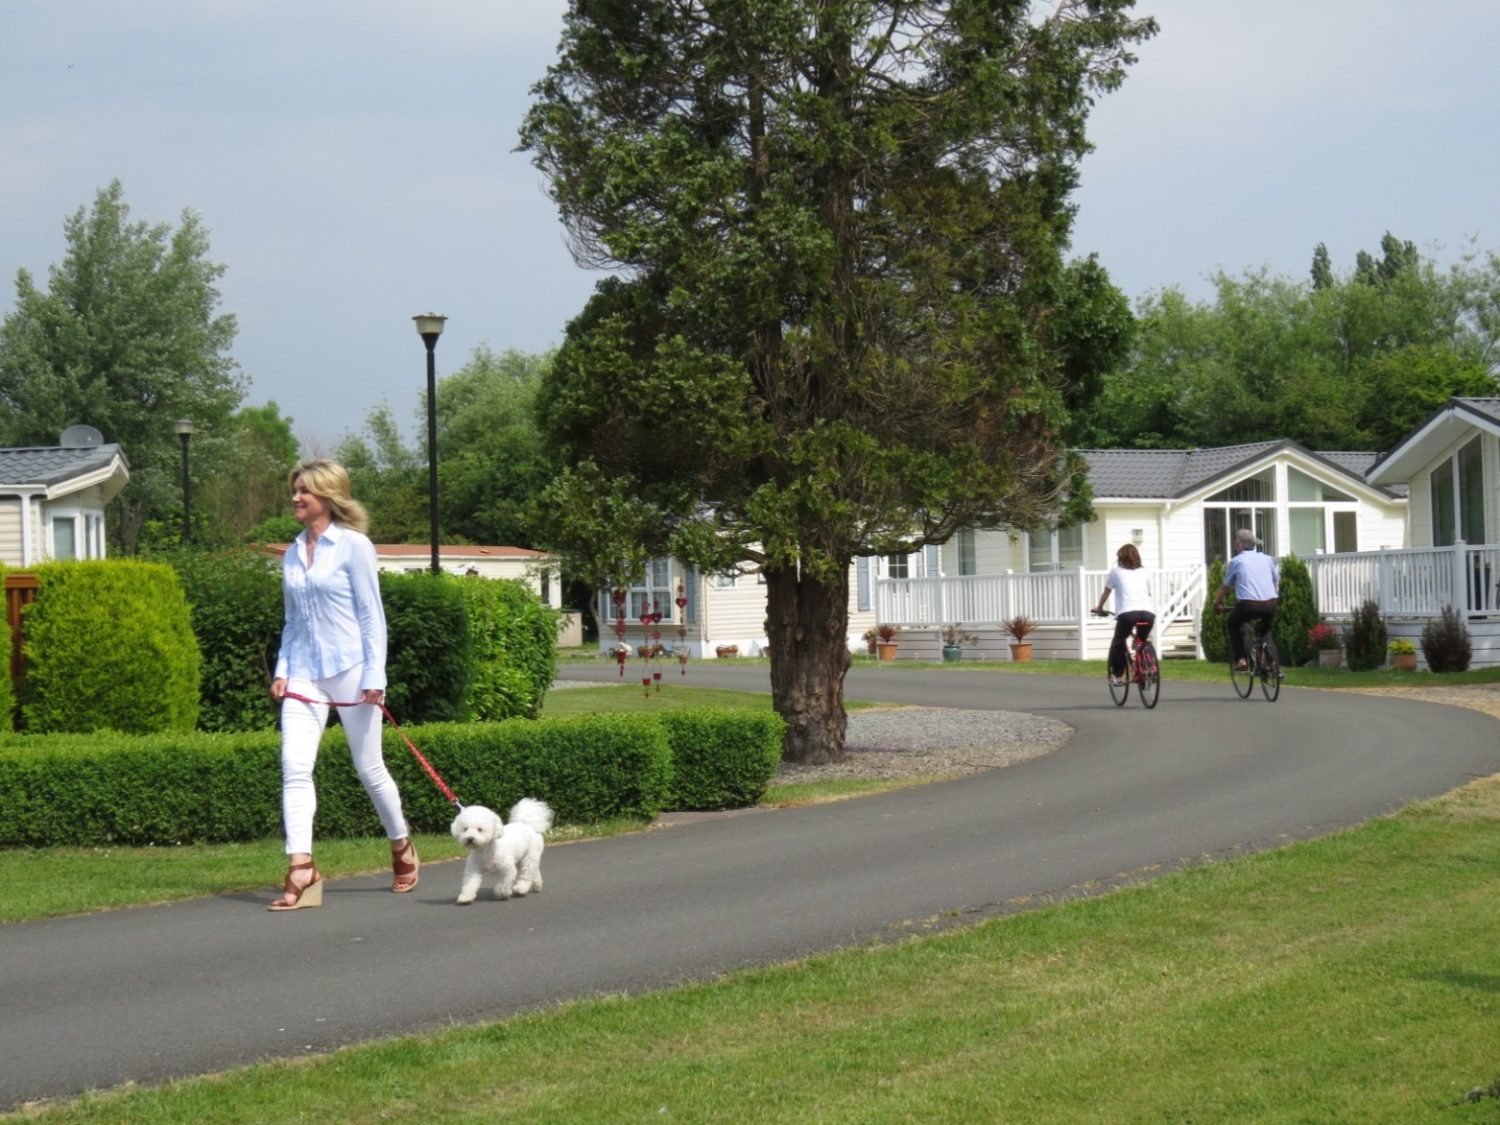 a lady takes her dog for a walk